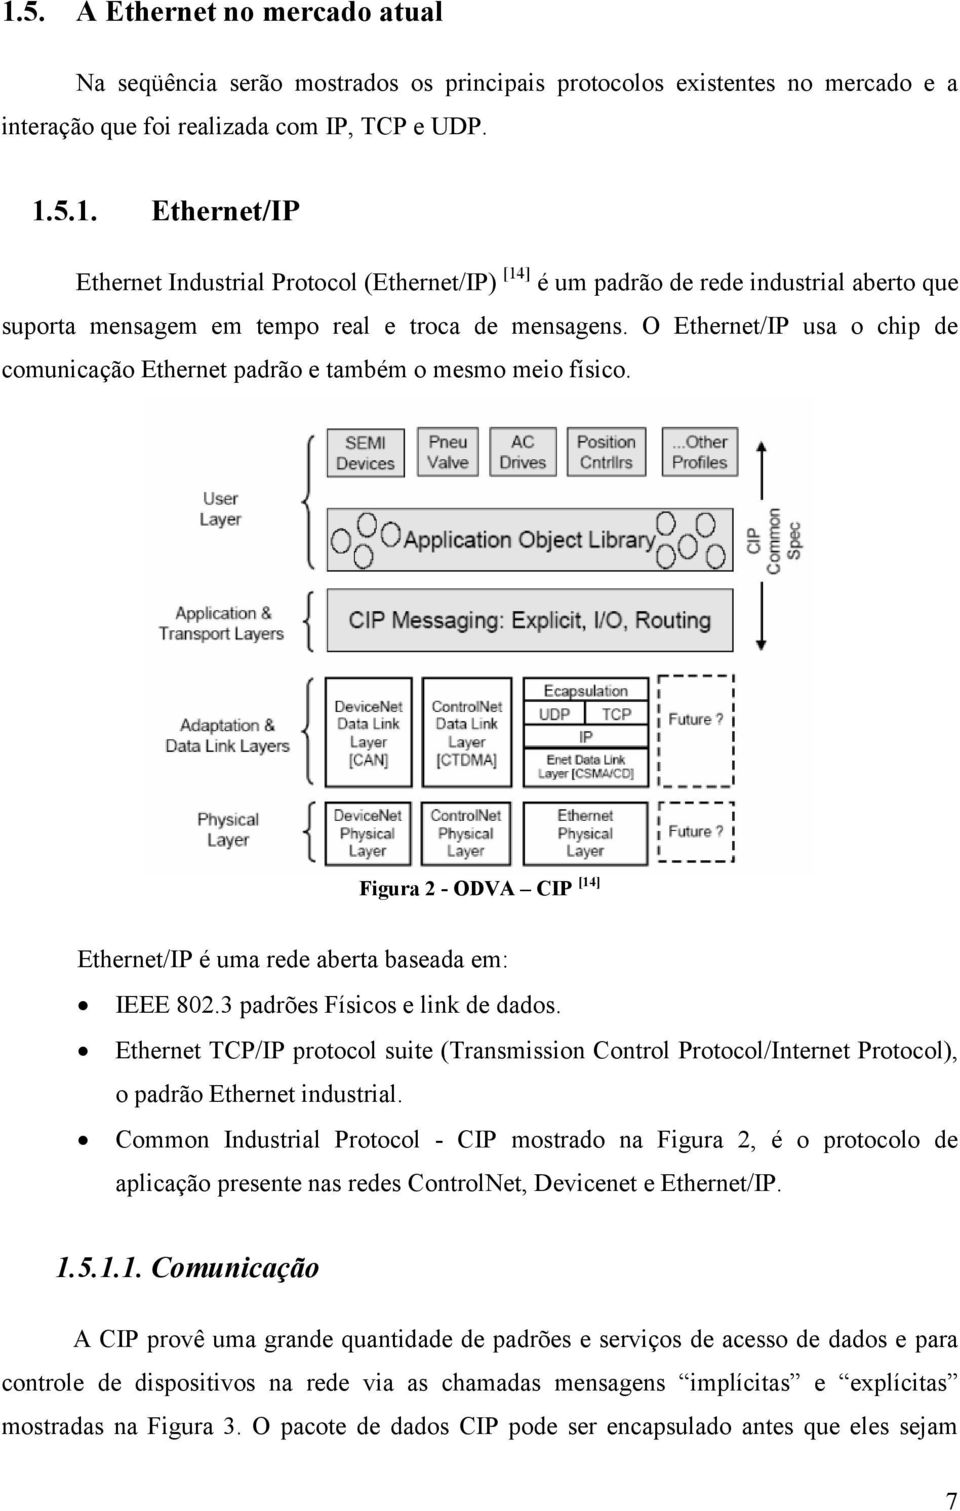 Ethernet TCP/IP protocol suite (Transmission Control Protocol/Internet Protocol), o padrão Ethernet industrial.